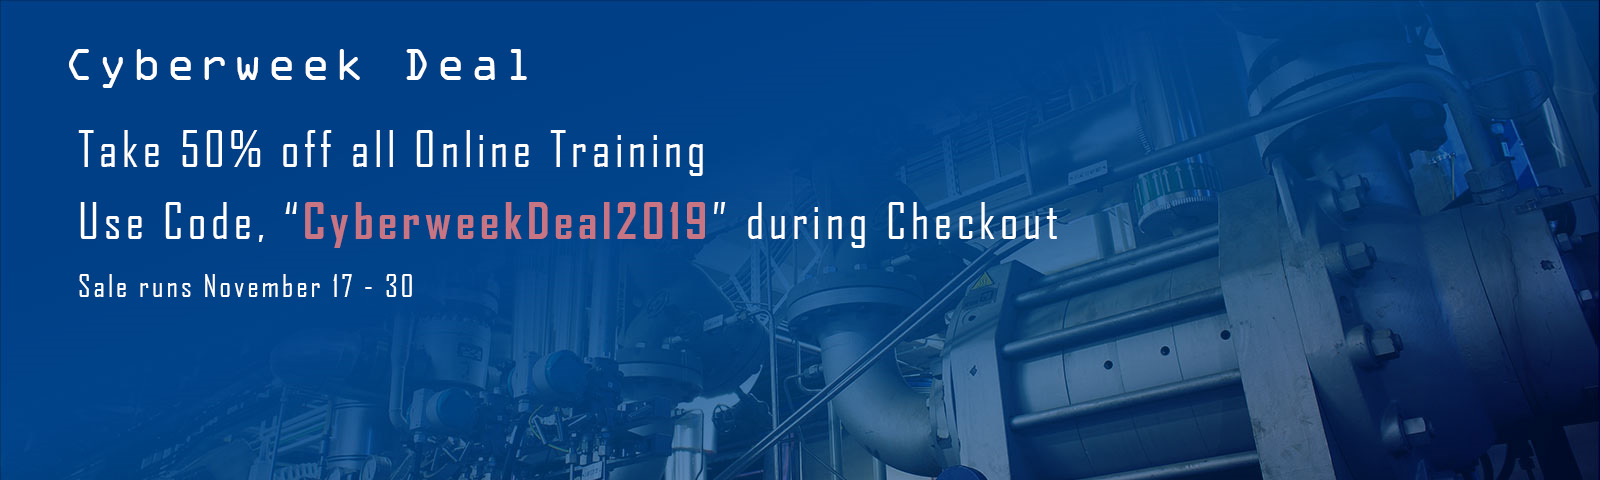 2019 Cyberweek Deal | <a  data-cke-saved-href='https://learning.cccglobal.com/ProductSubCats.aspx?SubCatID=23' href='https://learning.cccglobal.com/ProductSubCats.aspx?SubCatID=23'>Register Now</a>